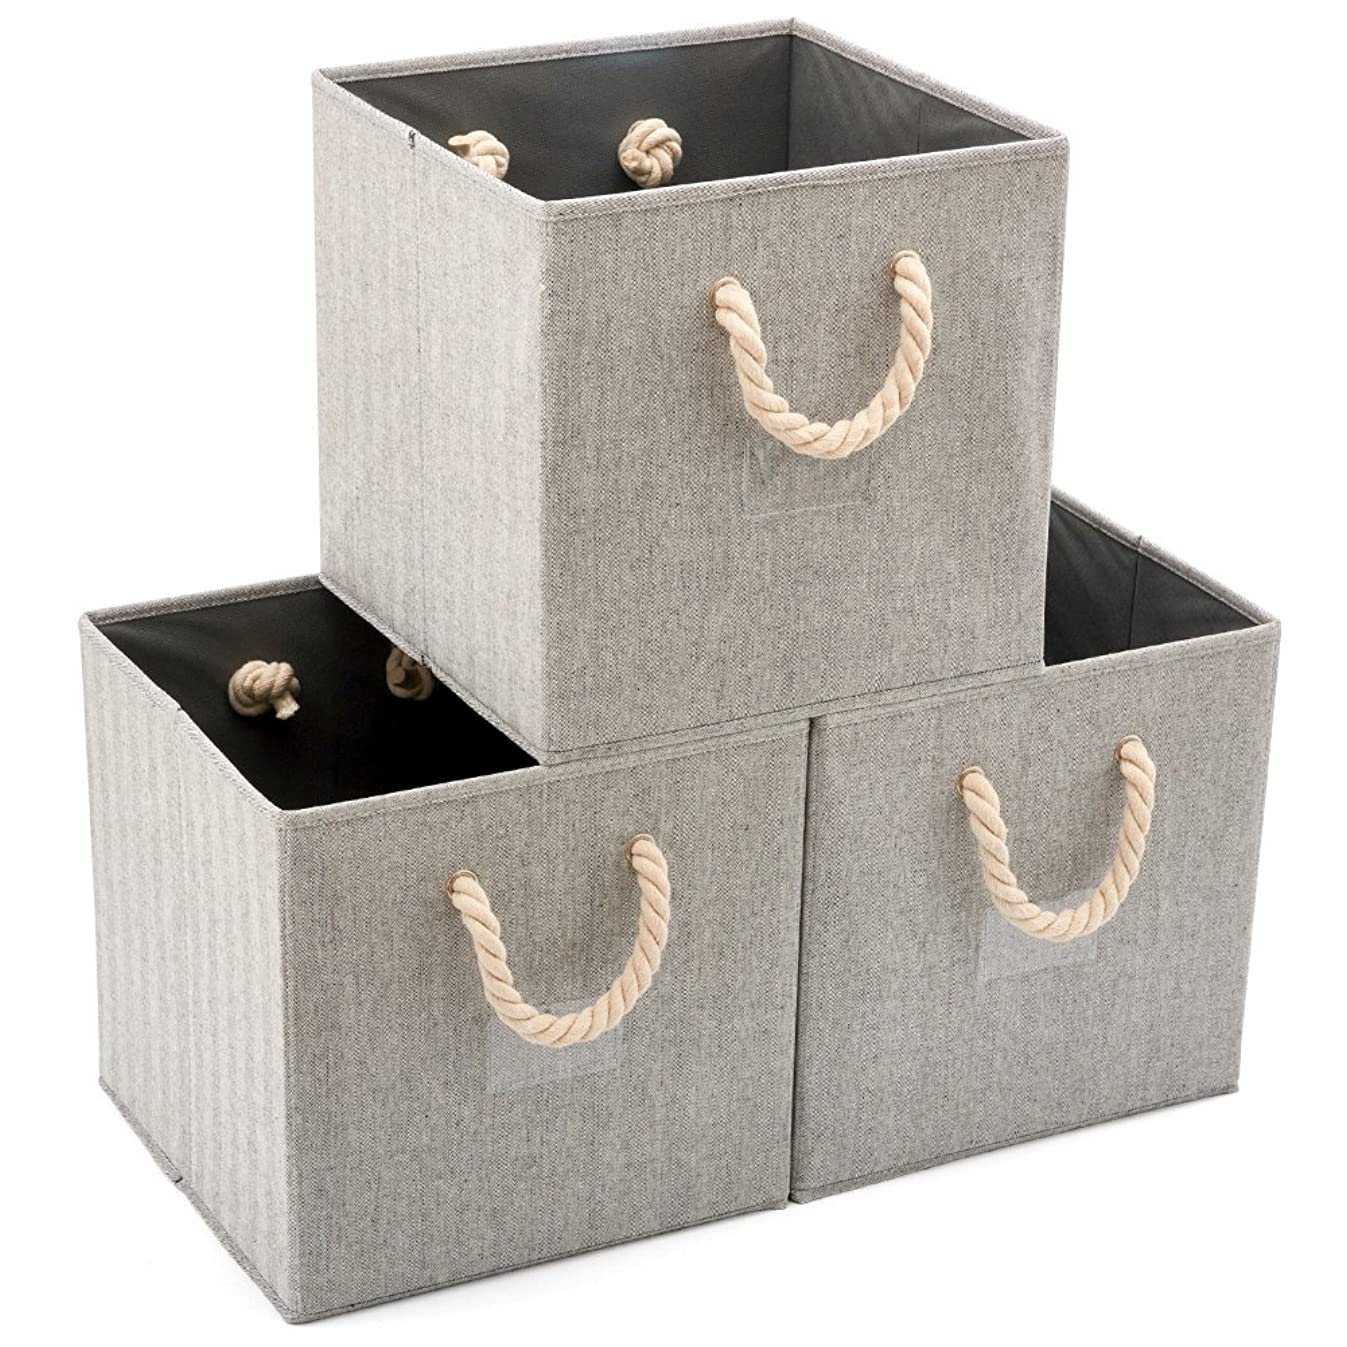 EZOWare [Set of 3] Foldable Fabric Storage Cube Bins with Cotton Rope Handle, Collapsible Resistant Basket Box Organizer for Shelves Closet Toys and More – Gray 13x13x13 inch